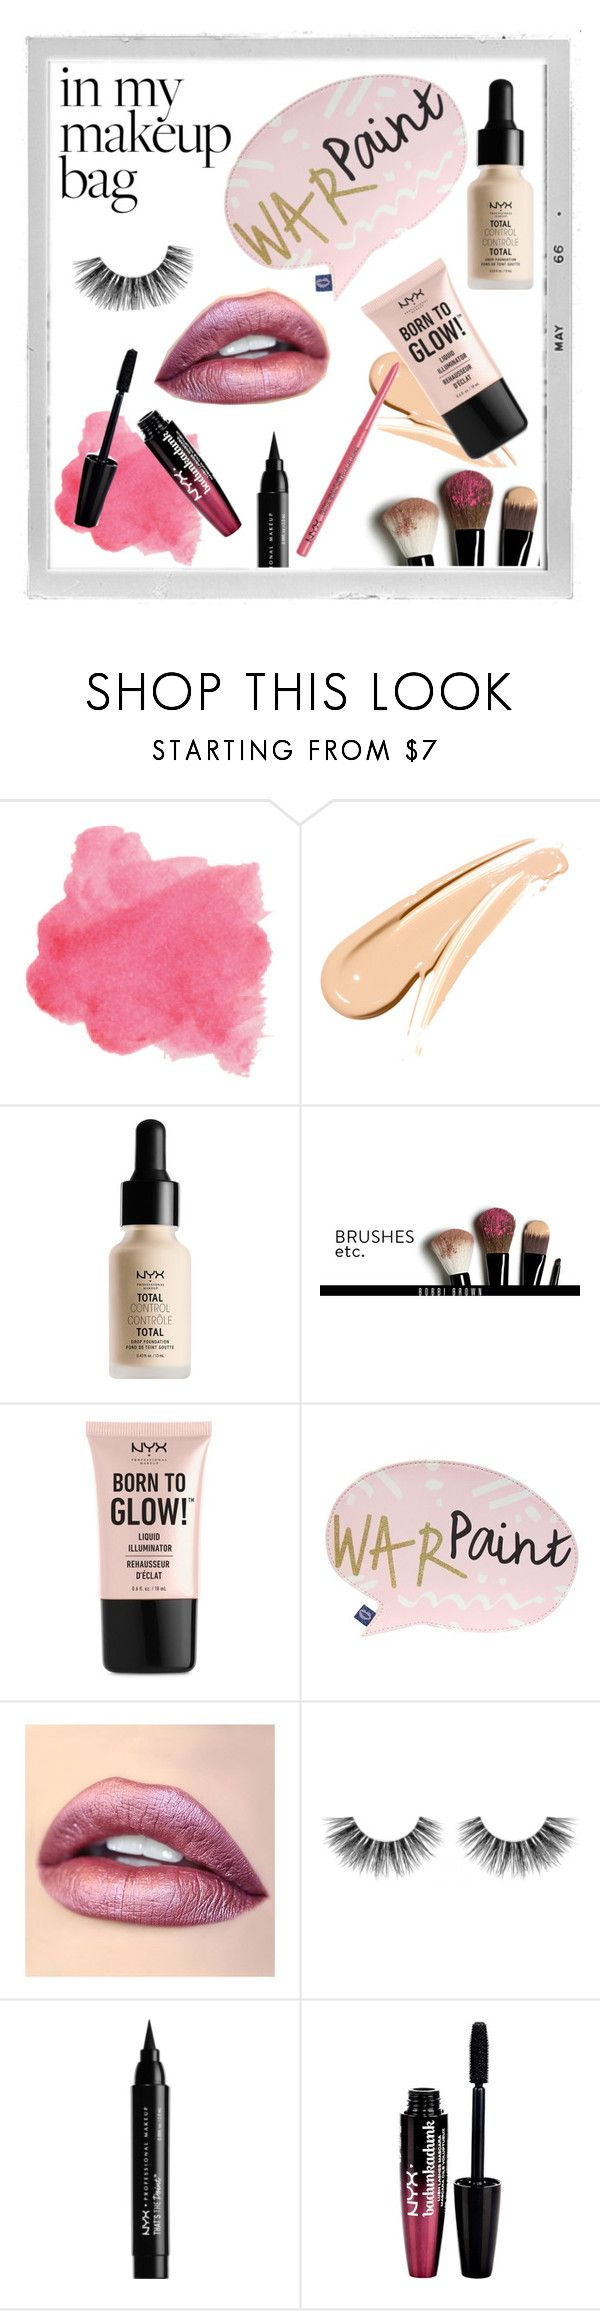 """War Paint 💋"" by rougered19 ❤ liked on Polyvore featuring beauty, Polaroid, NYX, Bobbi Brown Cosmetics, Disaster Designs, Jouer, Velour Lashes and Charlotte Russe"